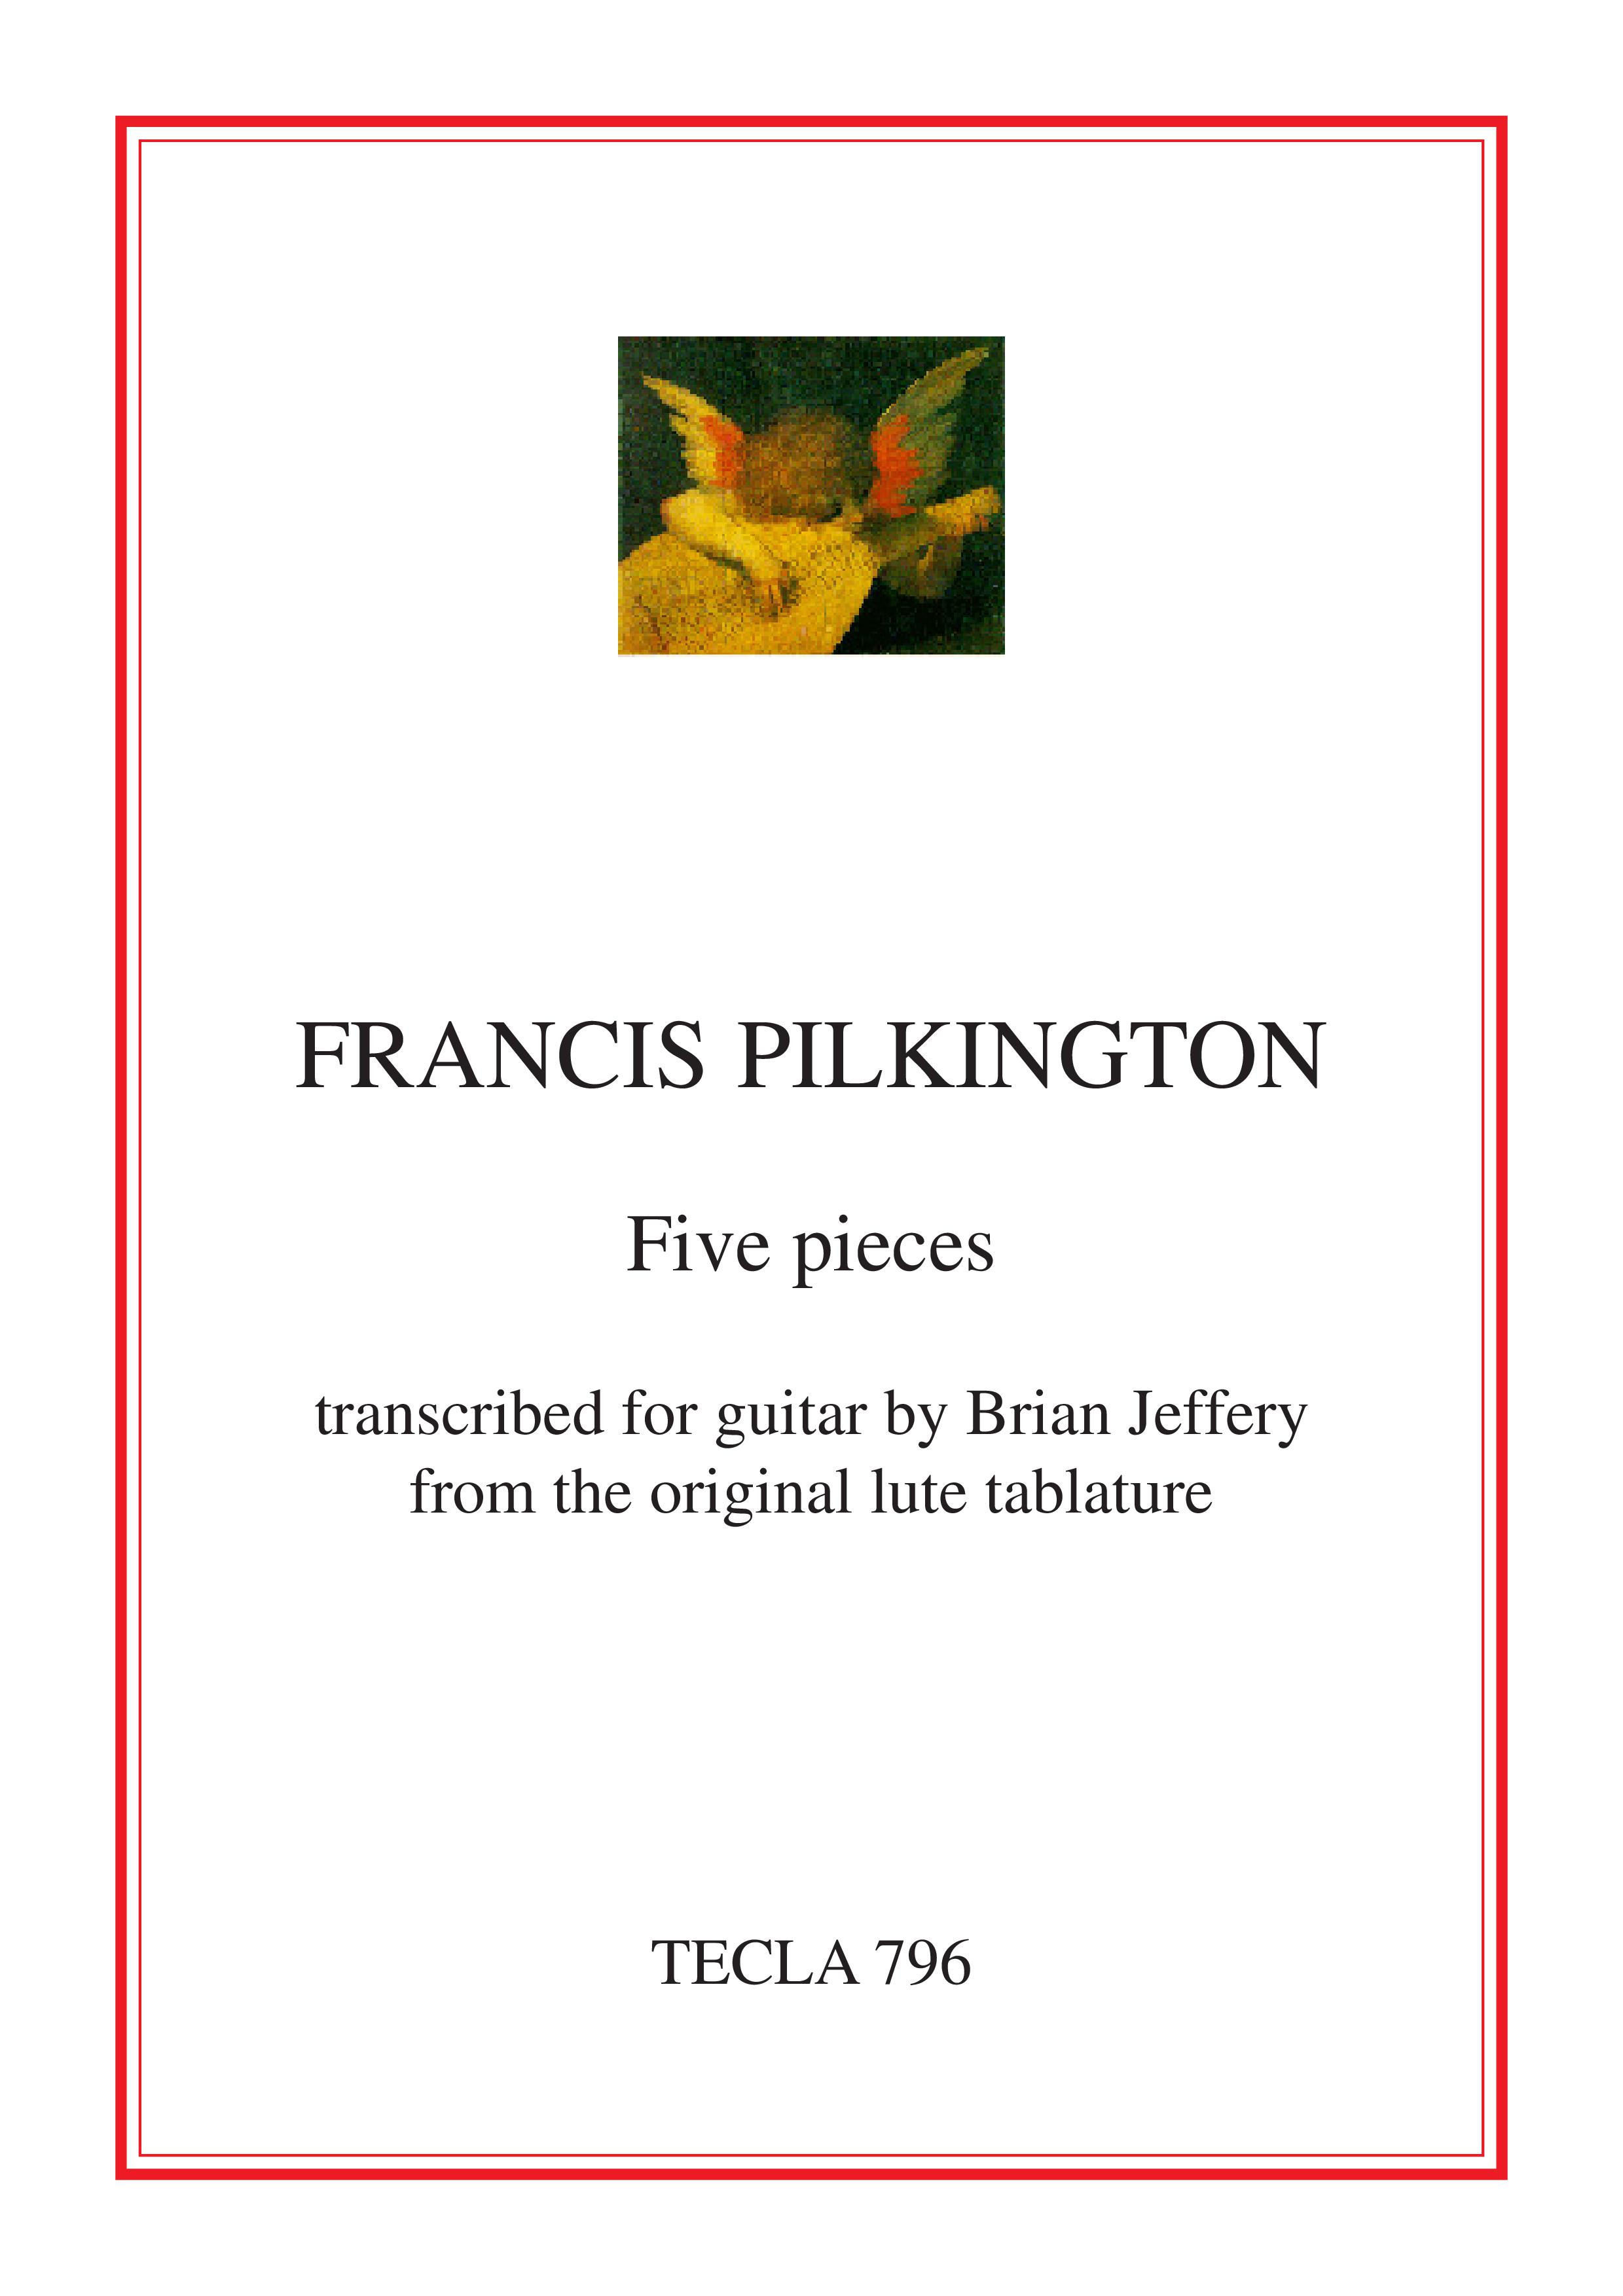 Francis Pilkington - Five lute pieces arranged for guitar by Brian Jeffery  (pdf)